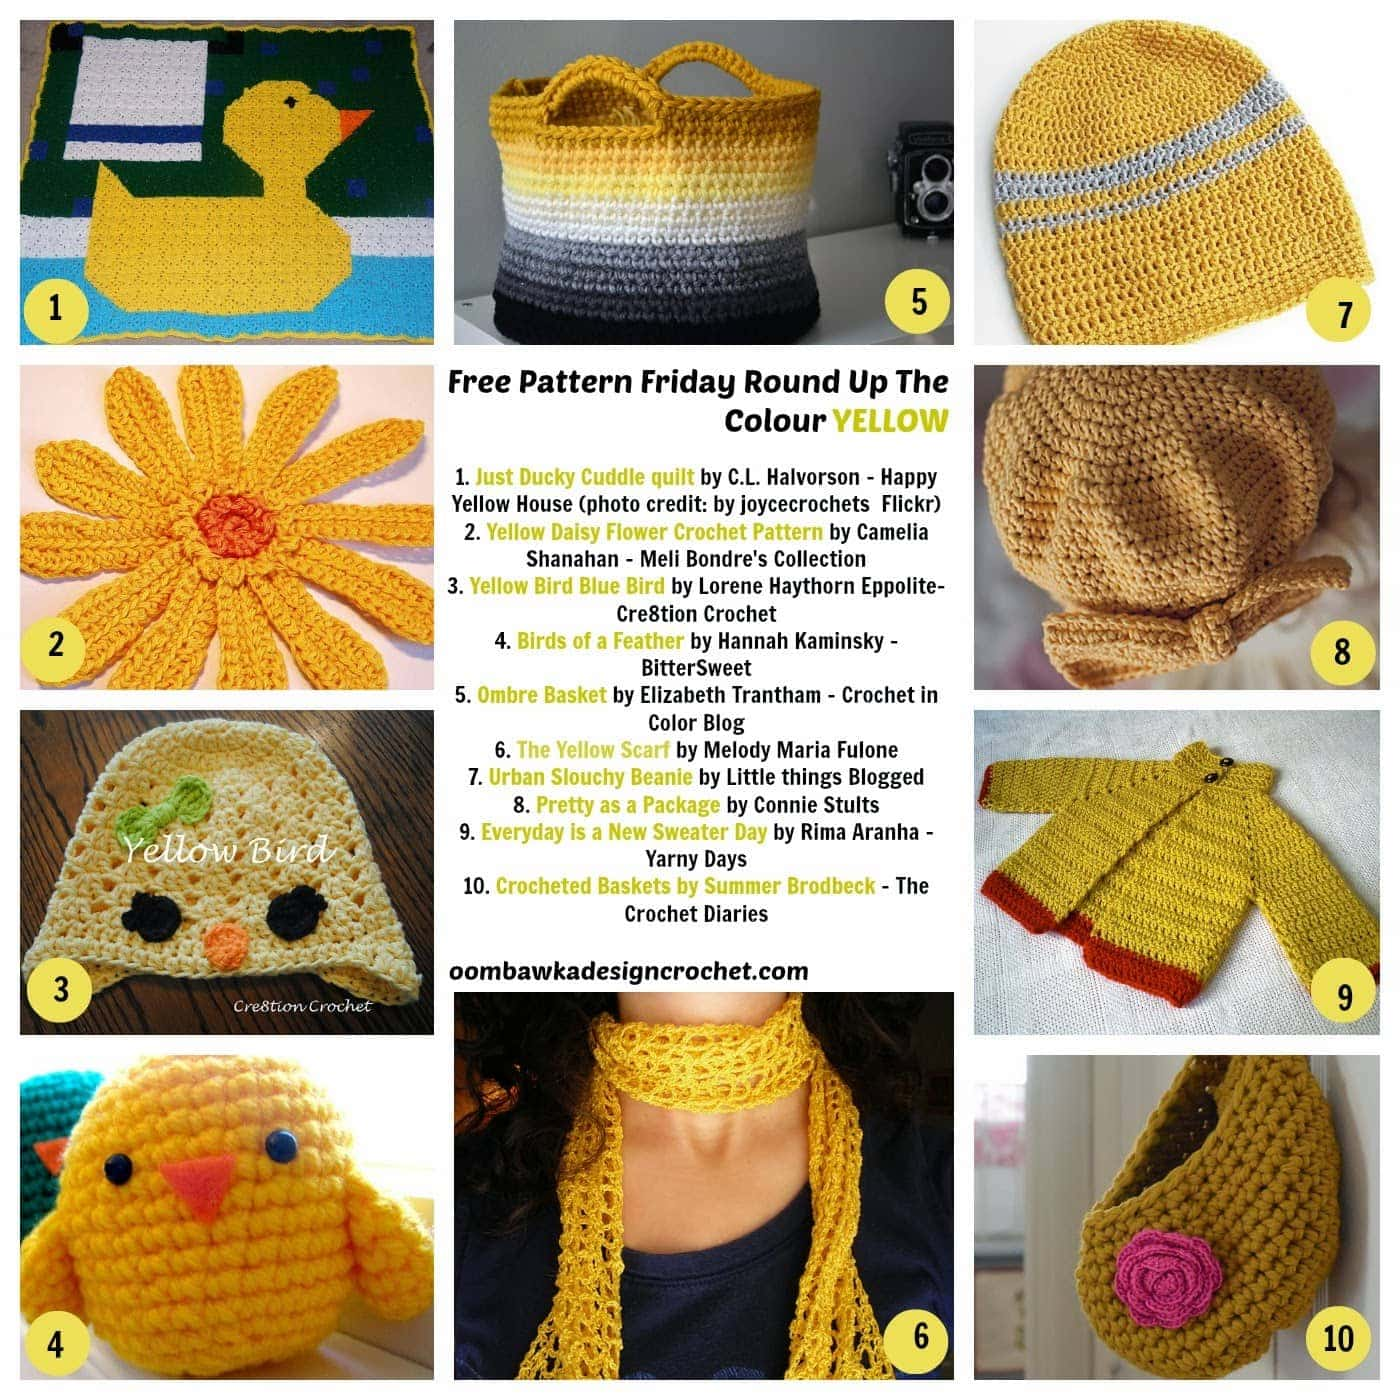 Free Patterns Crocheted in the Color Yellow